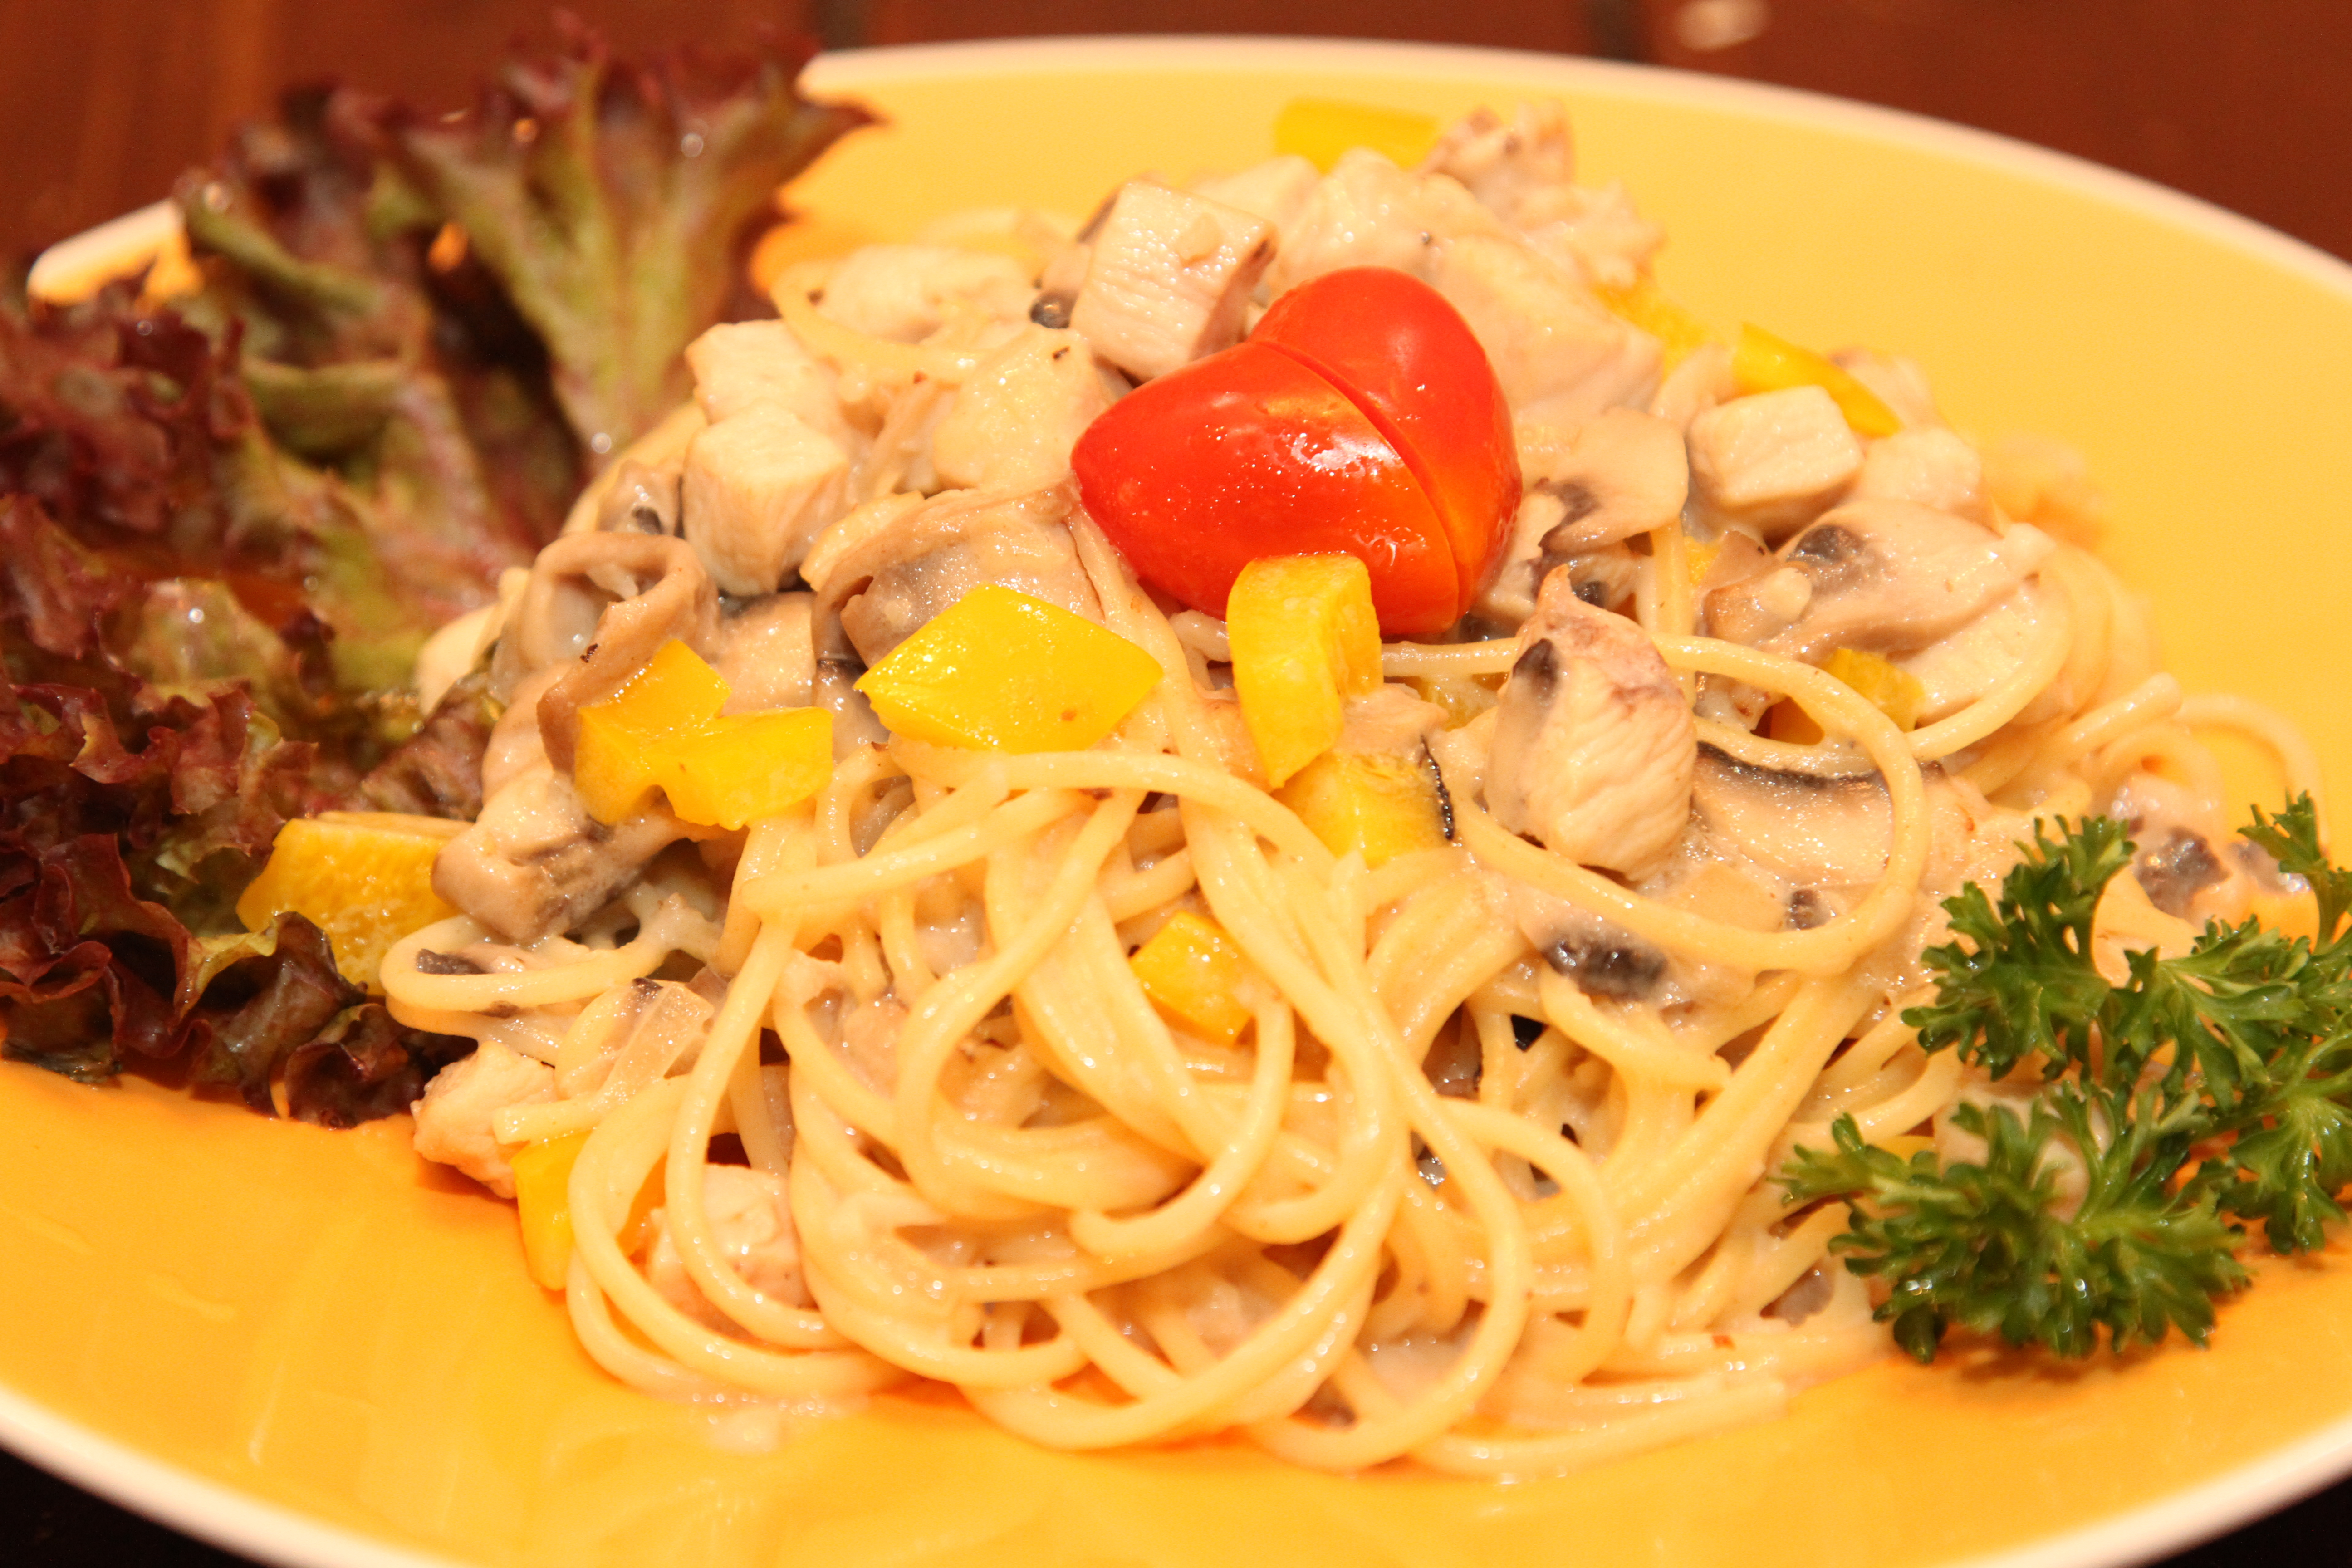 Pasta with Mushrooms, Cream sauce and Chicken